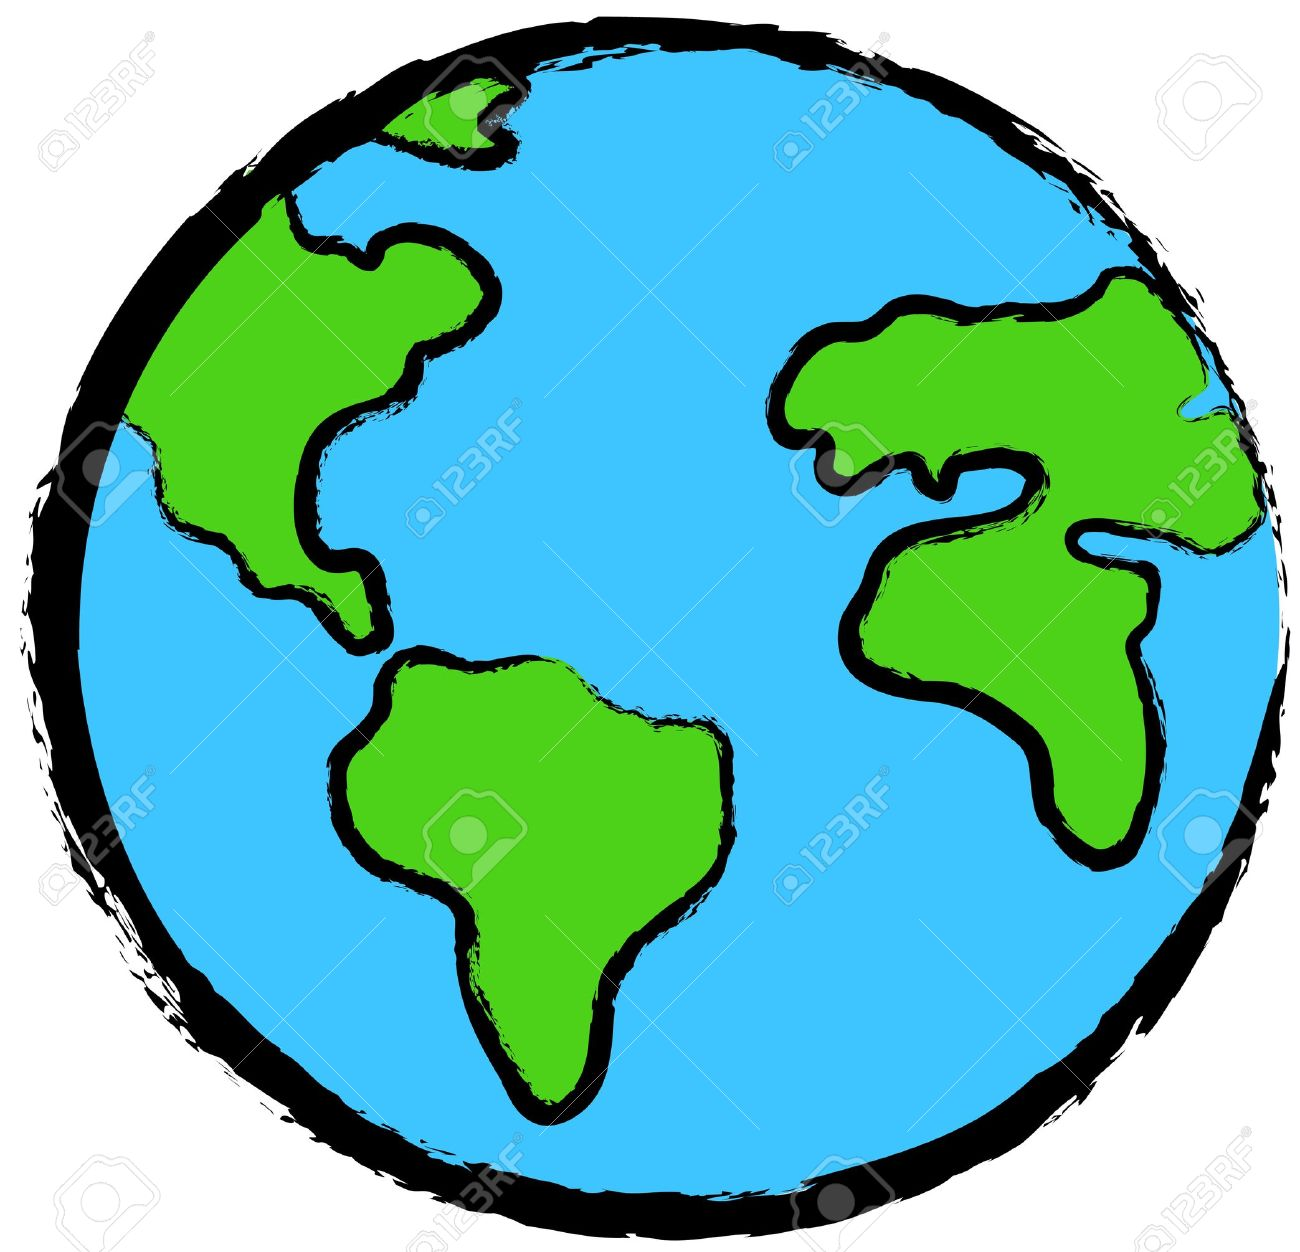 Planet earth icon Stock Photo - 11557778